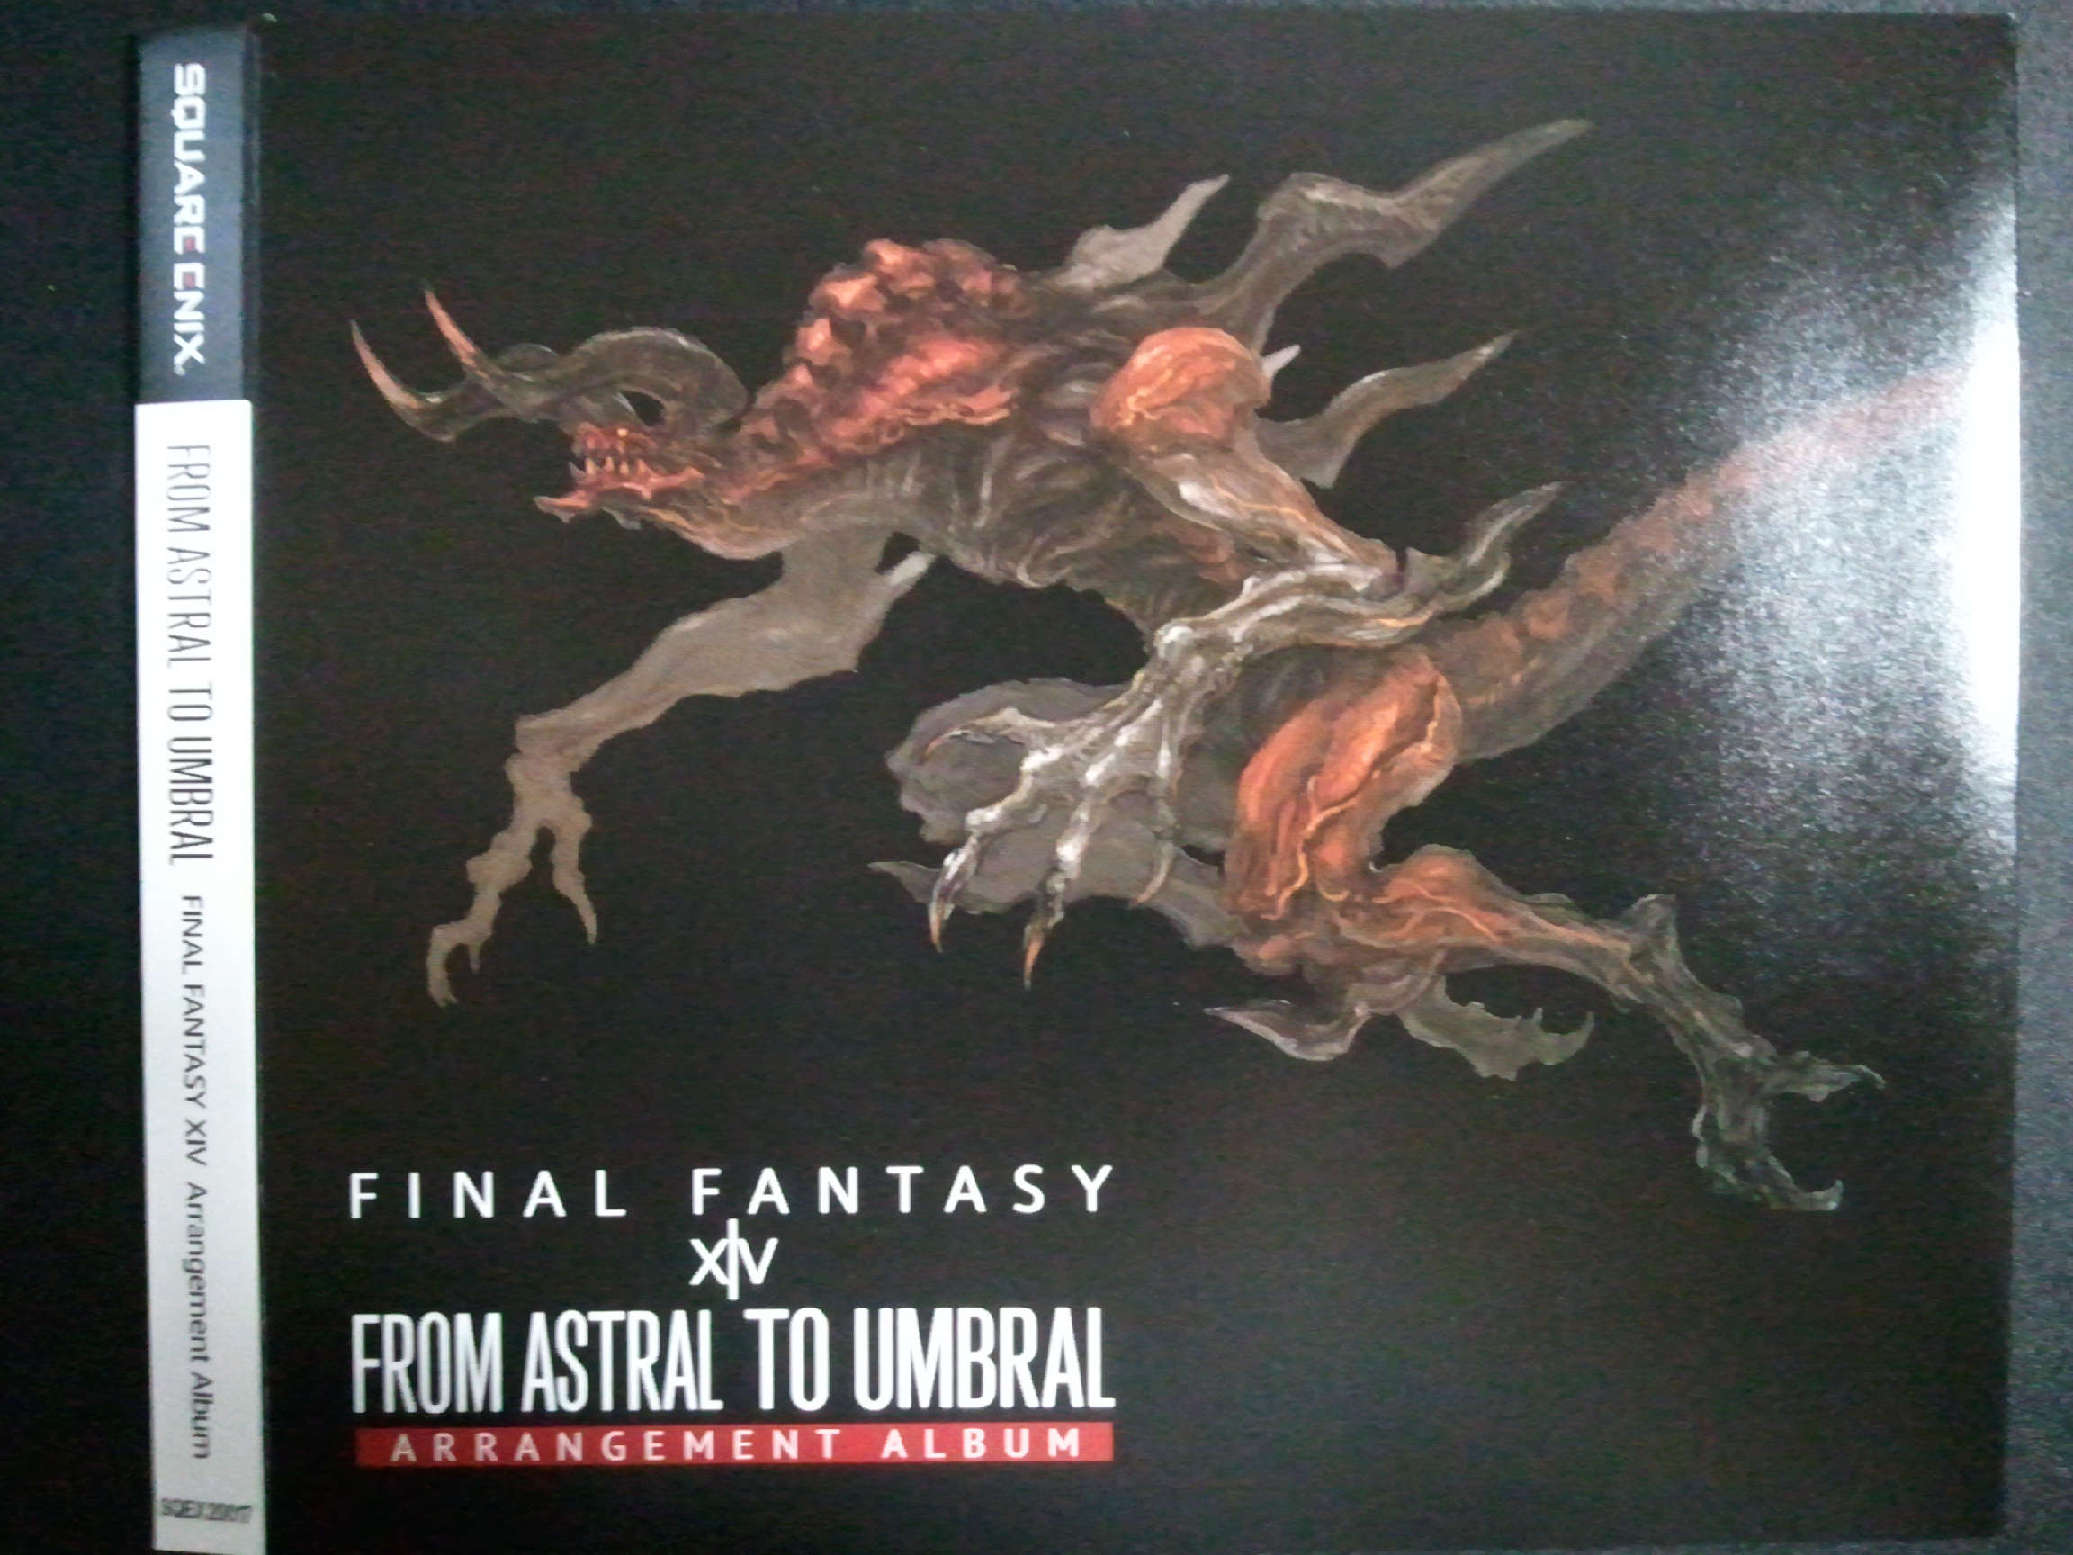 From Astral To Umbralタワレコ特典